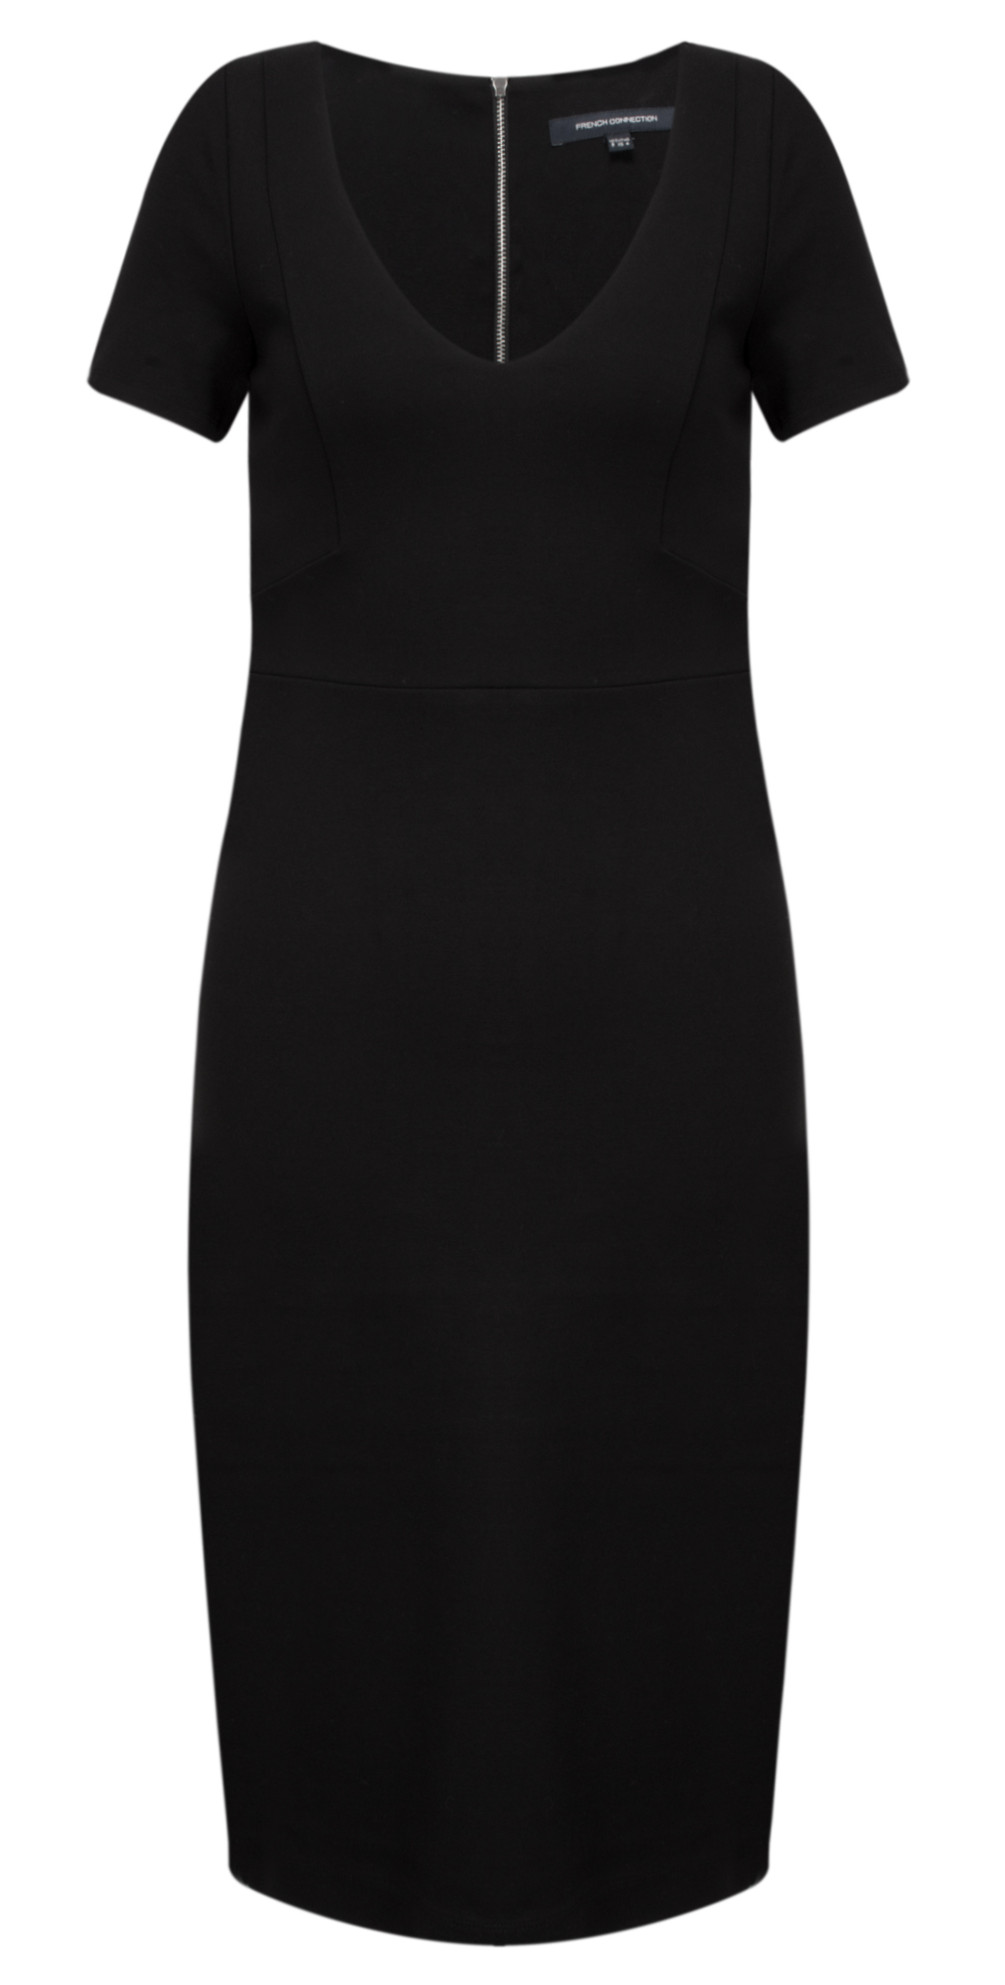 6f2e9b29def French Connection Lula Stretch V Neck Dress in Black